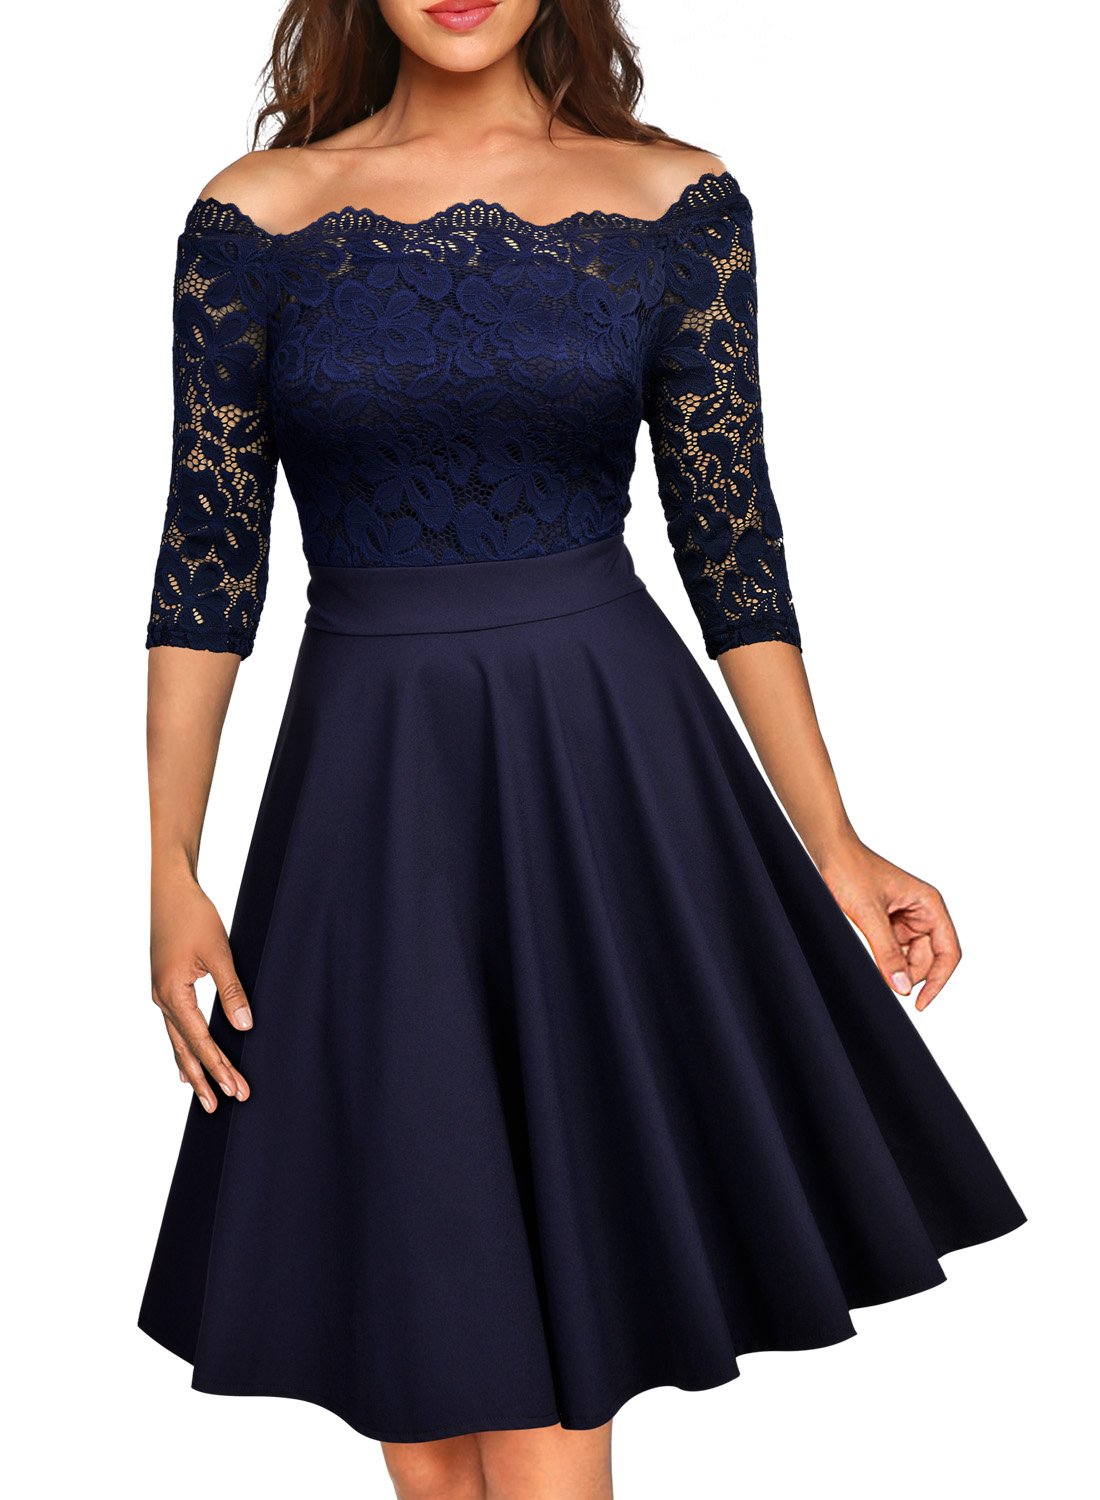 MissMay Womens Vintage Floral Lace Half Sleeve Boat Neck Cocktail Formal Swing Dress Medium, D-navy Blue, Medium by MissMay